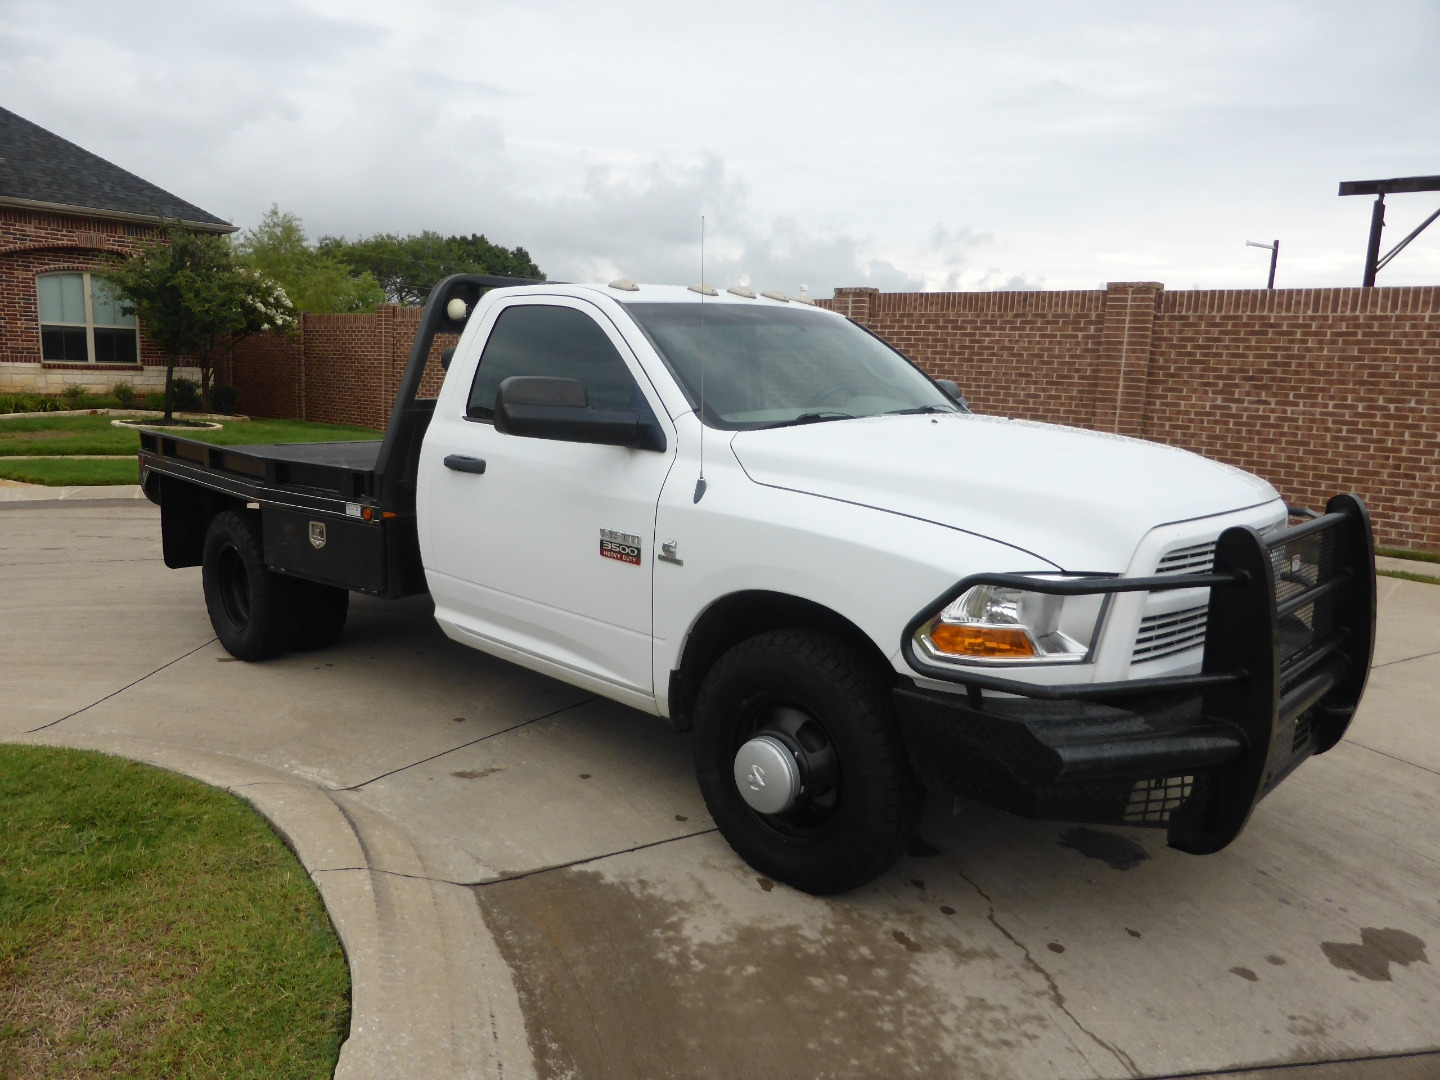 2012 Dodge Ram 3500 2wd Reg Cab St Cummins 6 Speed Flatbed Super Nice Low Miles Village Motors Dealership In Lewisville